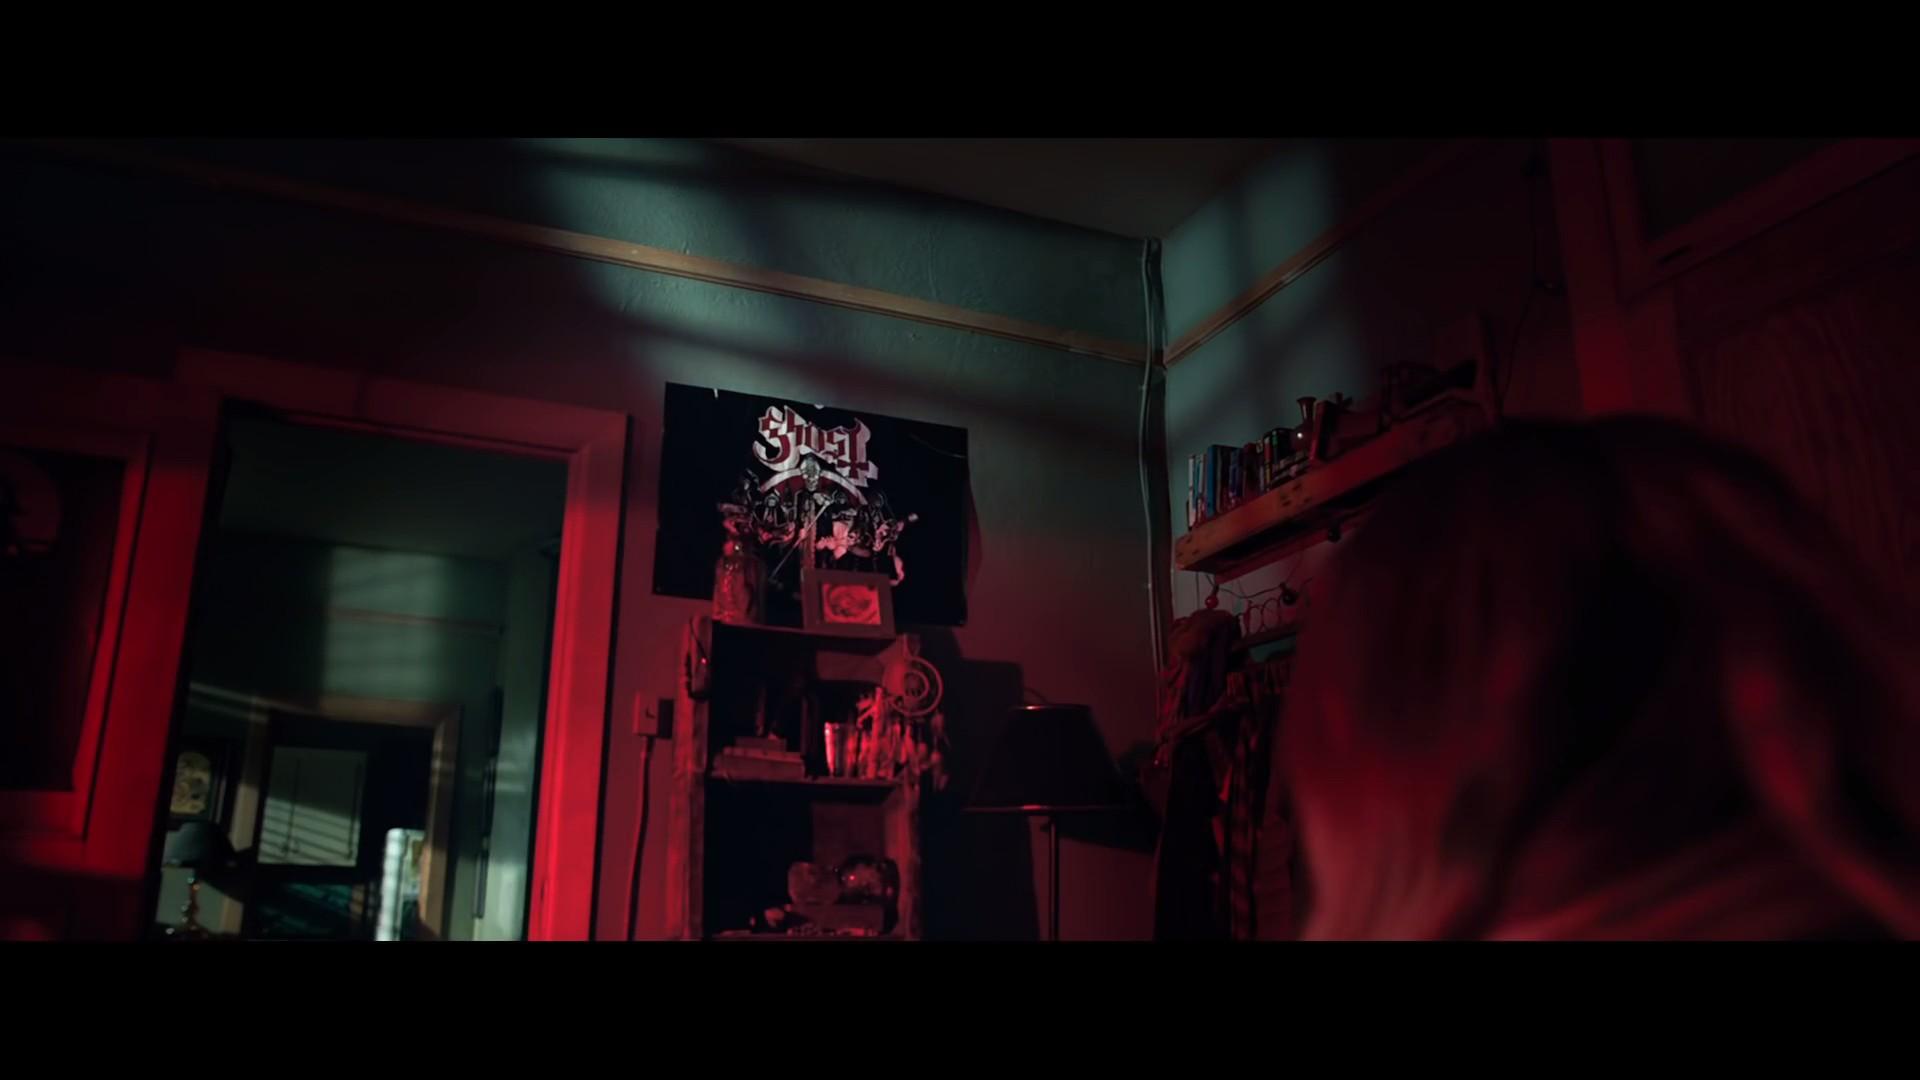 Ghost Poster Spotted In 'Lights Out' Movie Trailer